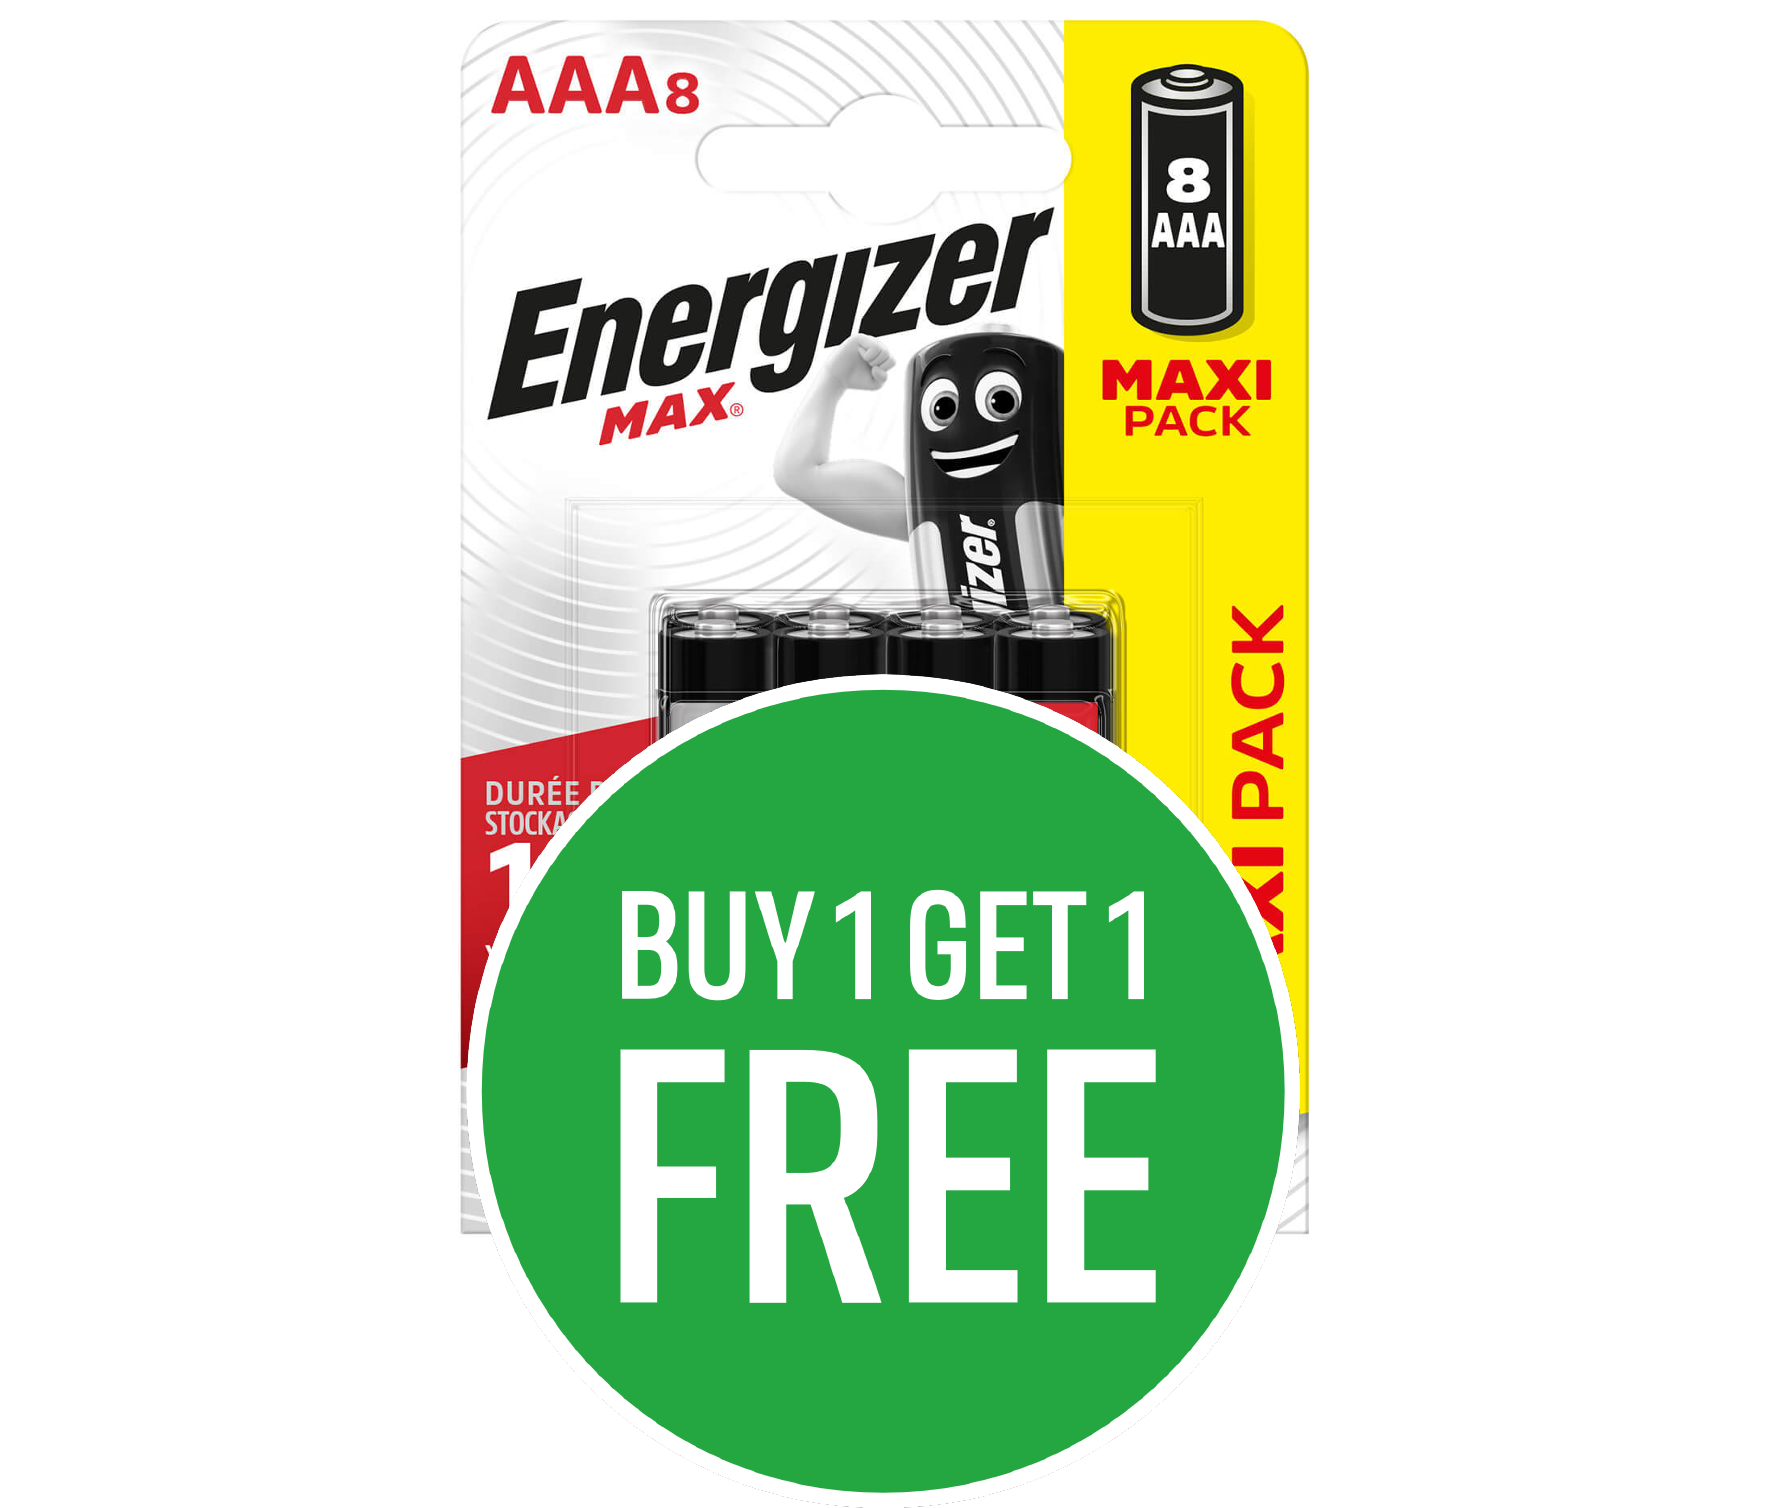 Buy One Get One Free on Energizer MAX Alkaline AA/AAA Batteries - 8 Pack Mix and Match